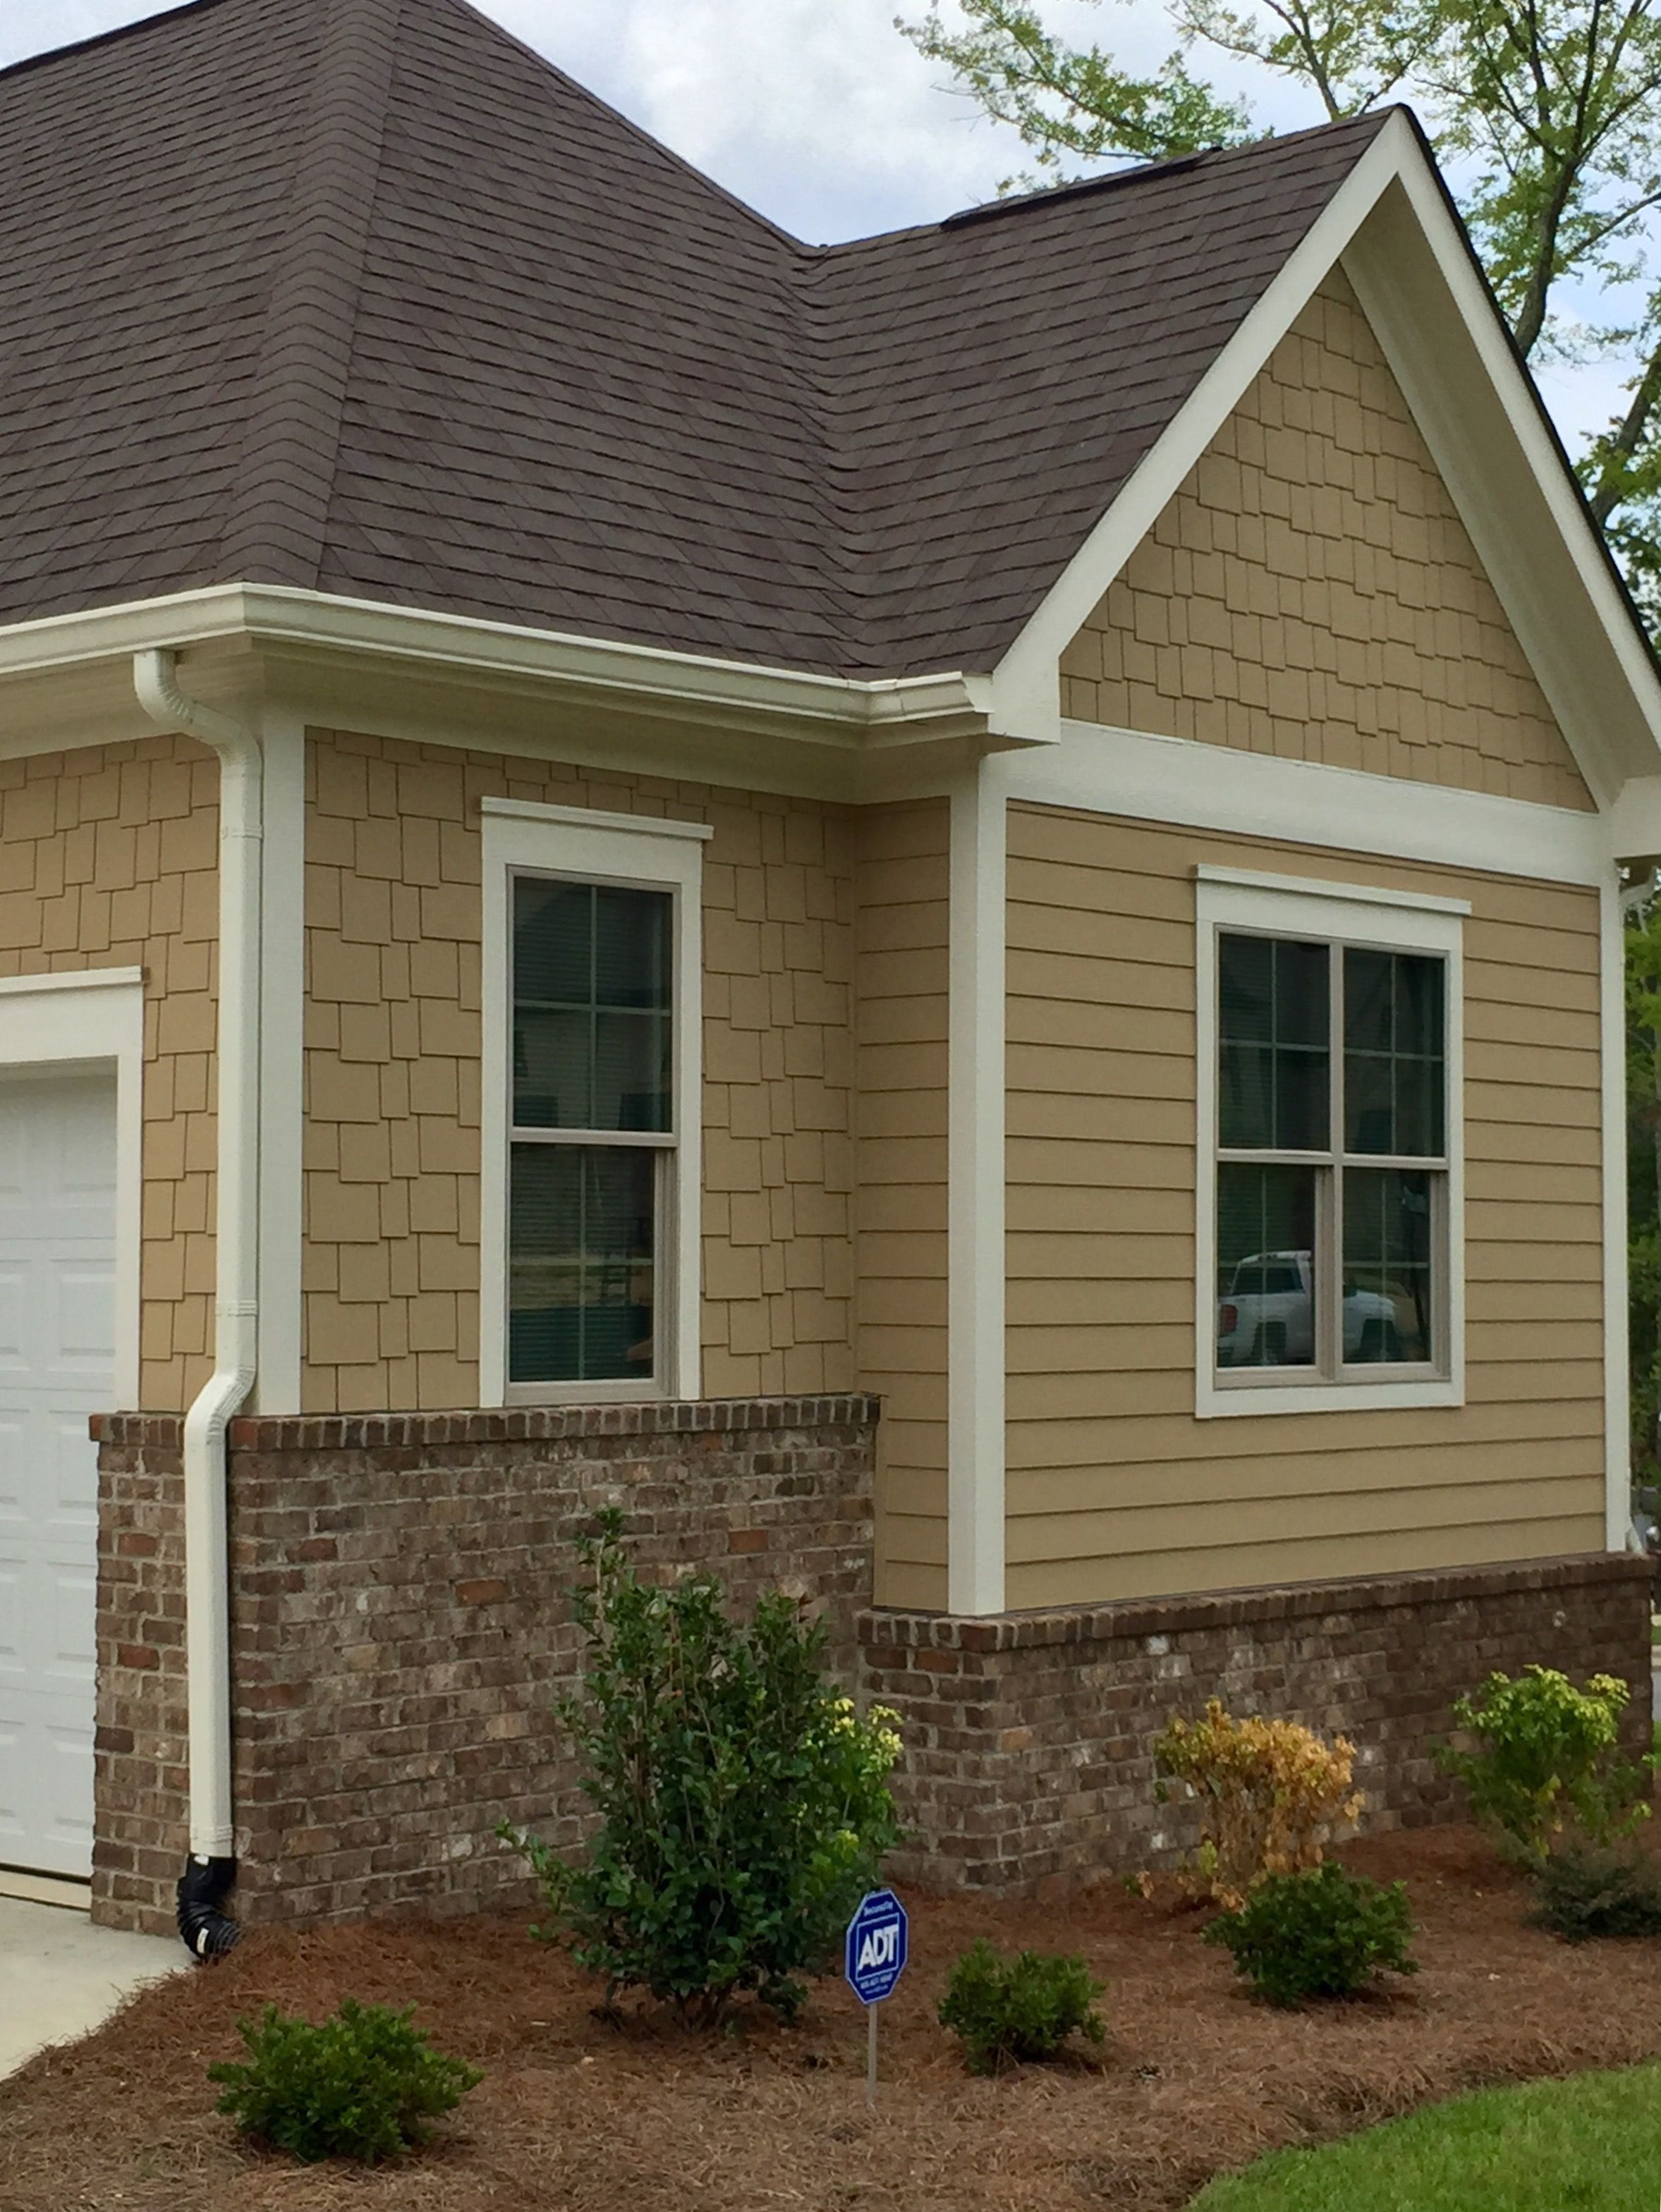 Exterior Window Trim Brick arh exterior ashland plan (exterior 48) roof: oc oakridge teak